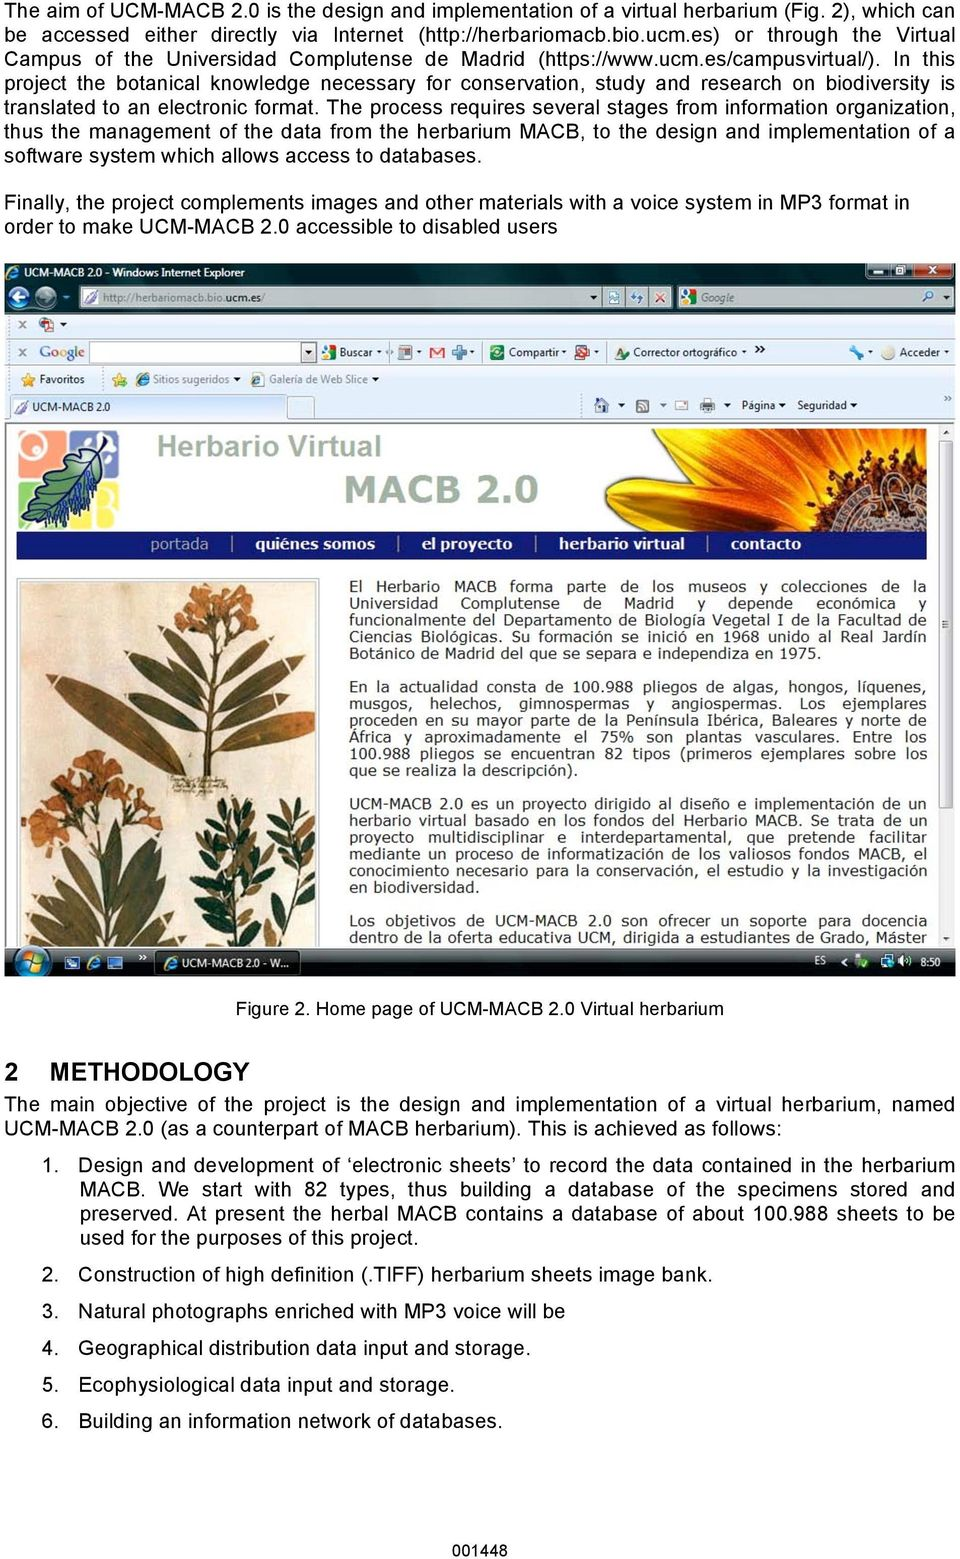 In this project the botanical knowledge necessary for conservation, study and research on biodiversity is translated to an electronic format.